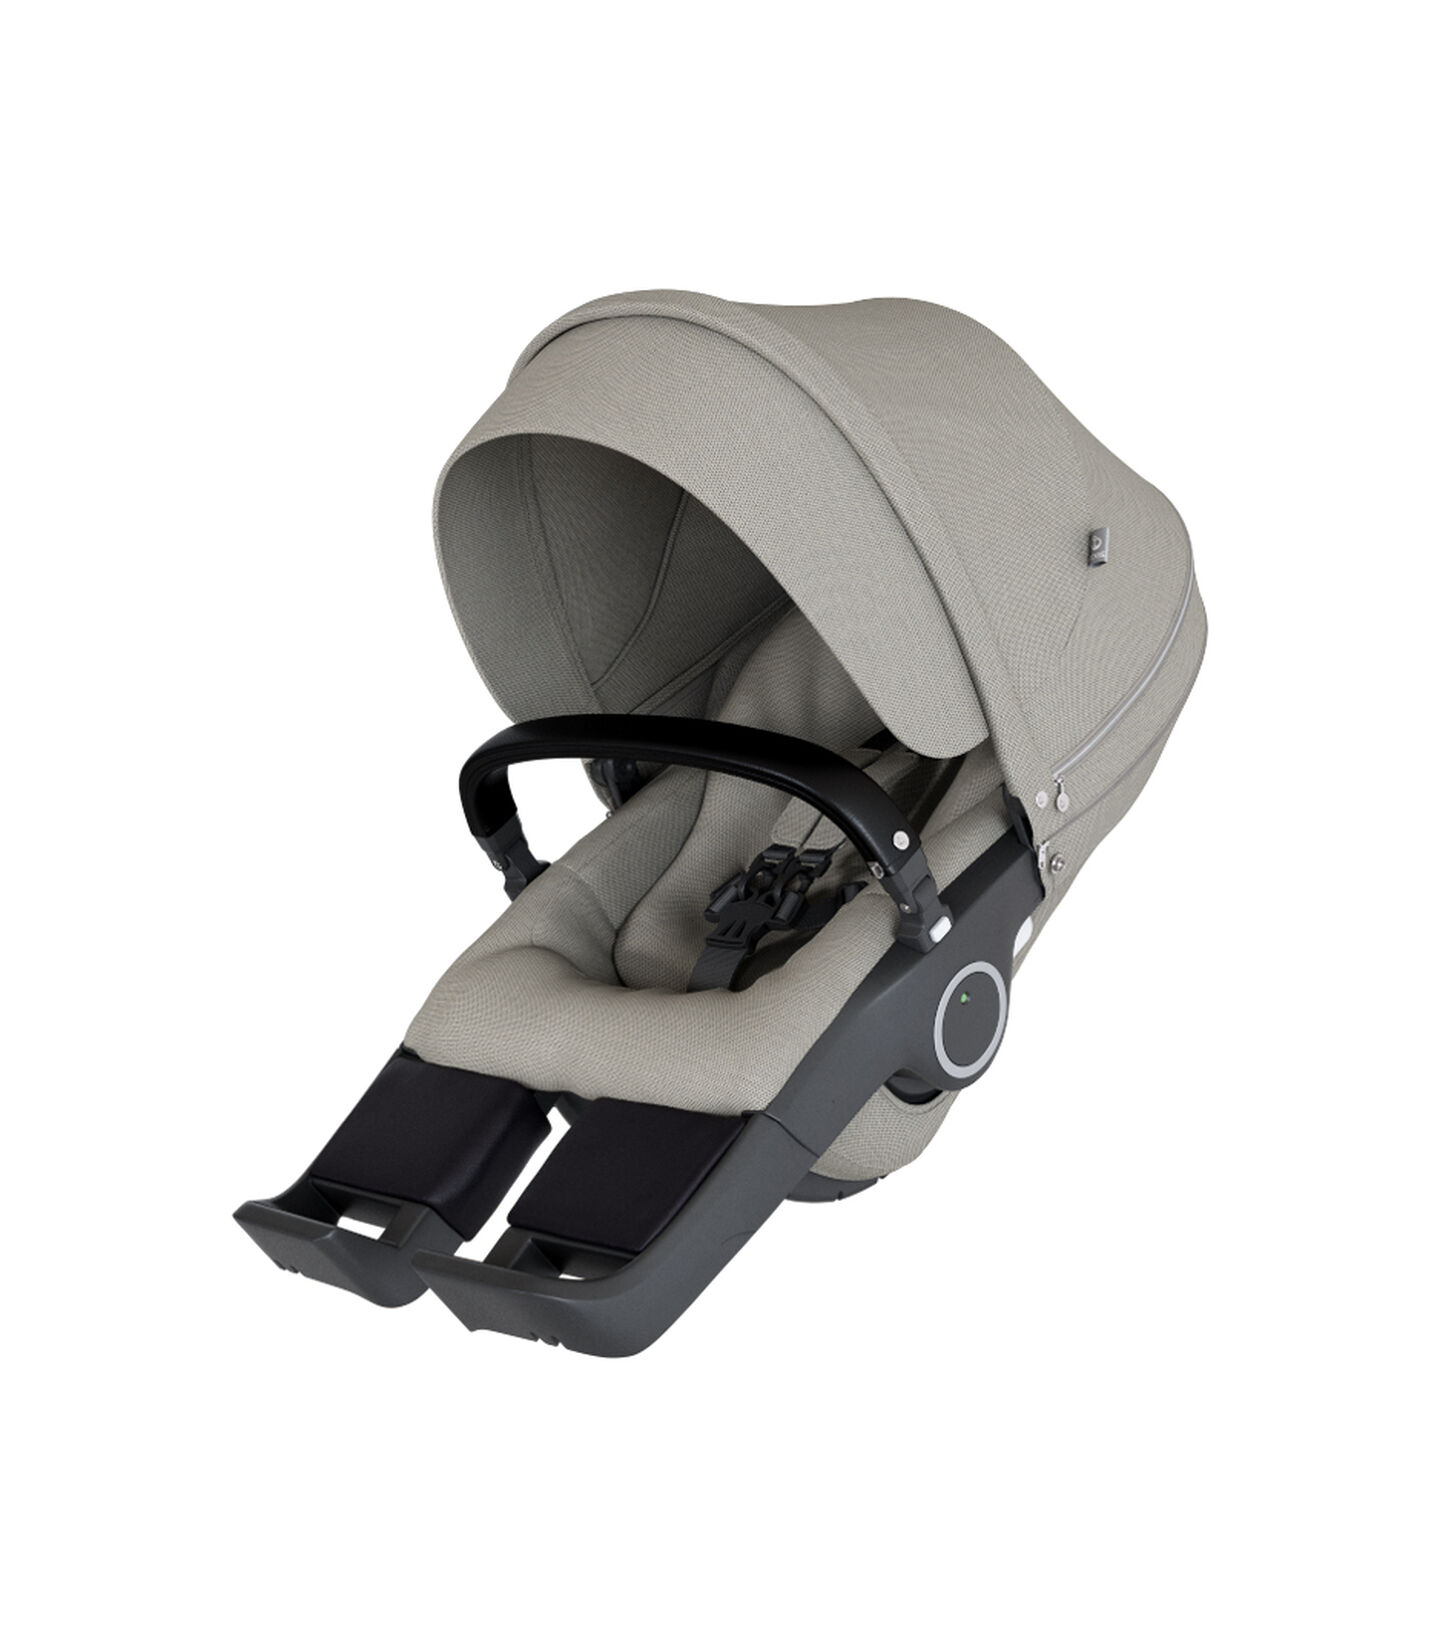 Stokke® Stroller Seat Brushed Grey, Brushed Grey, mainview view 2